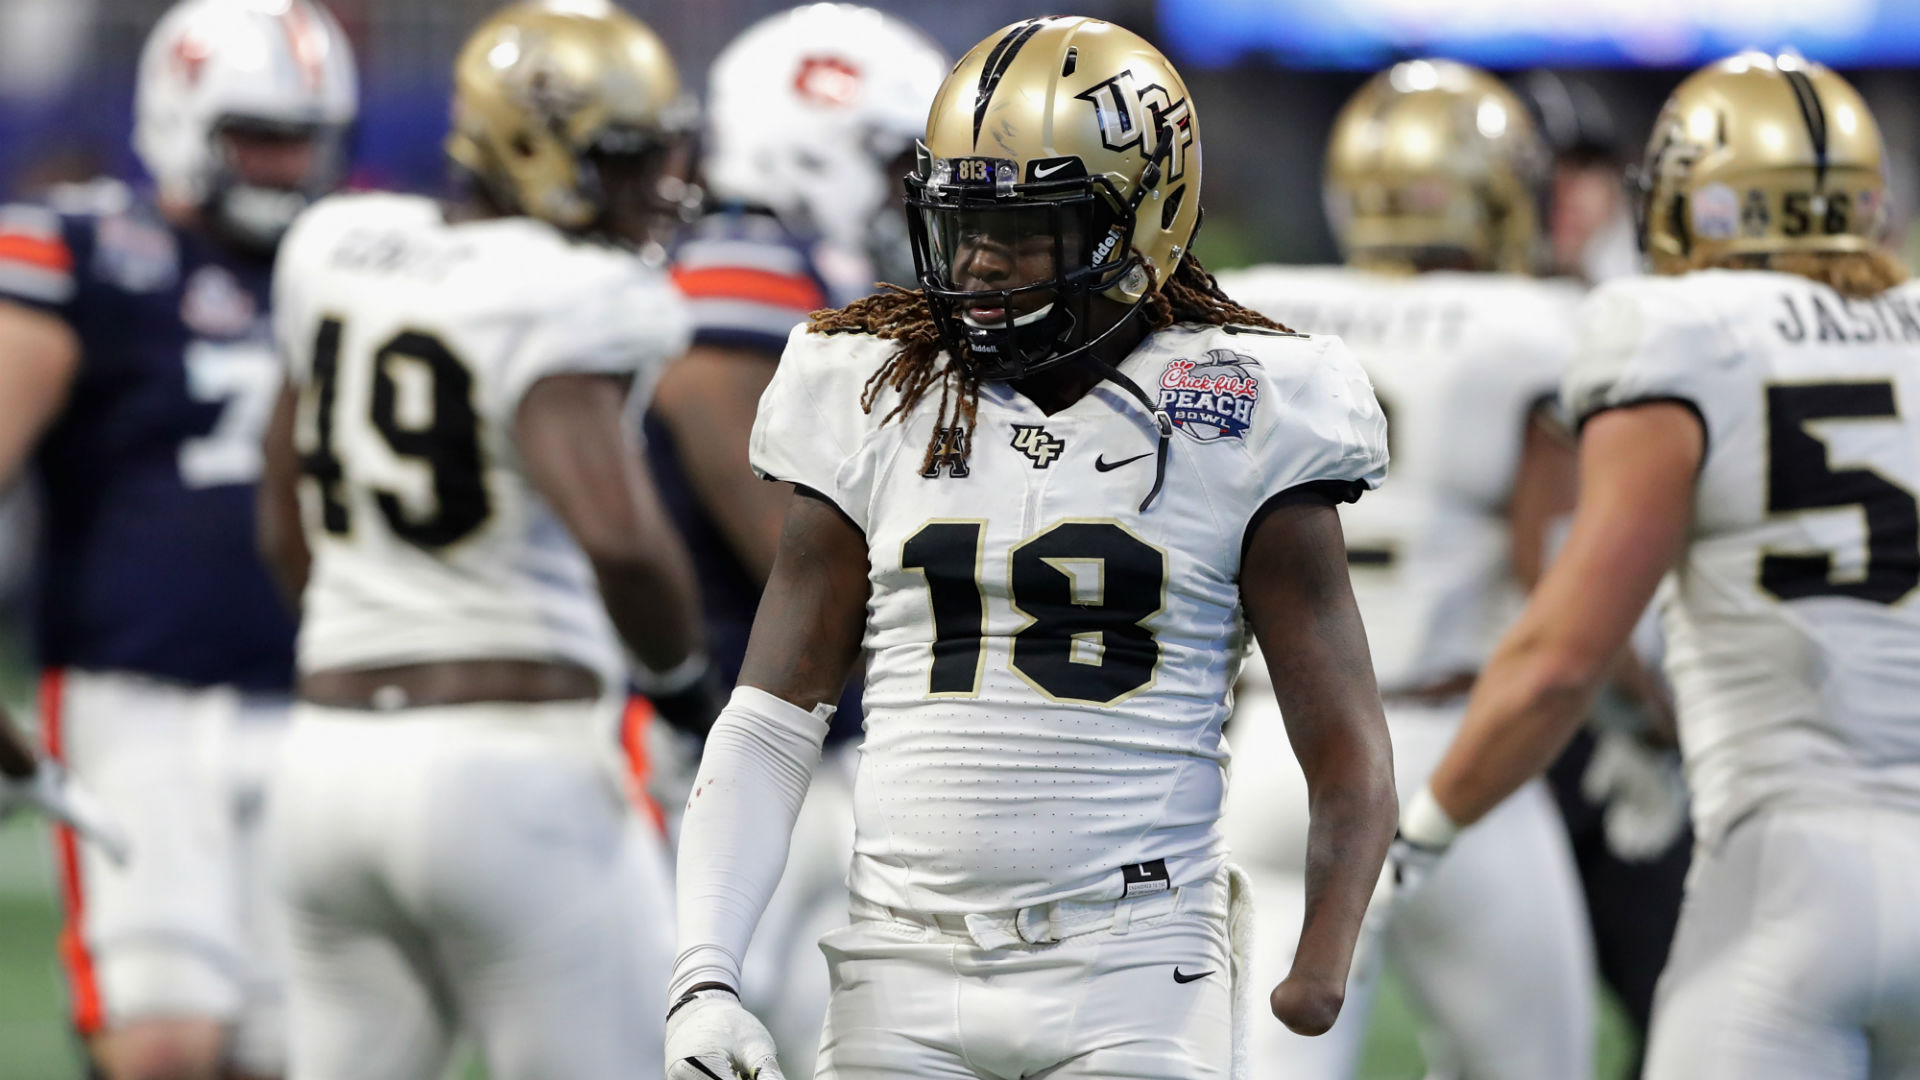 Shaquem Griffin's incredible combine continues with record-breaking 40-yard dash